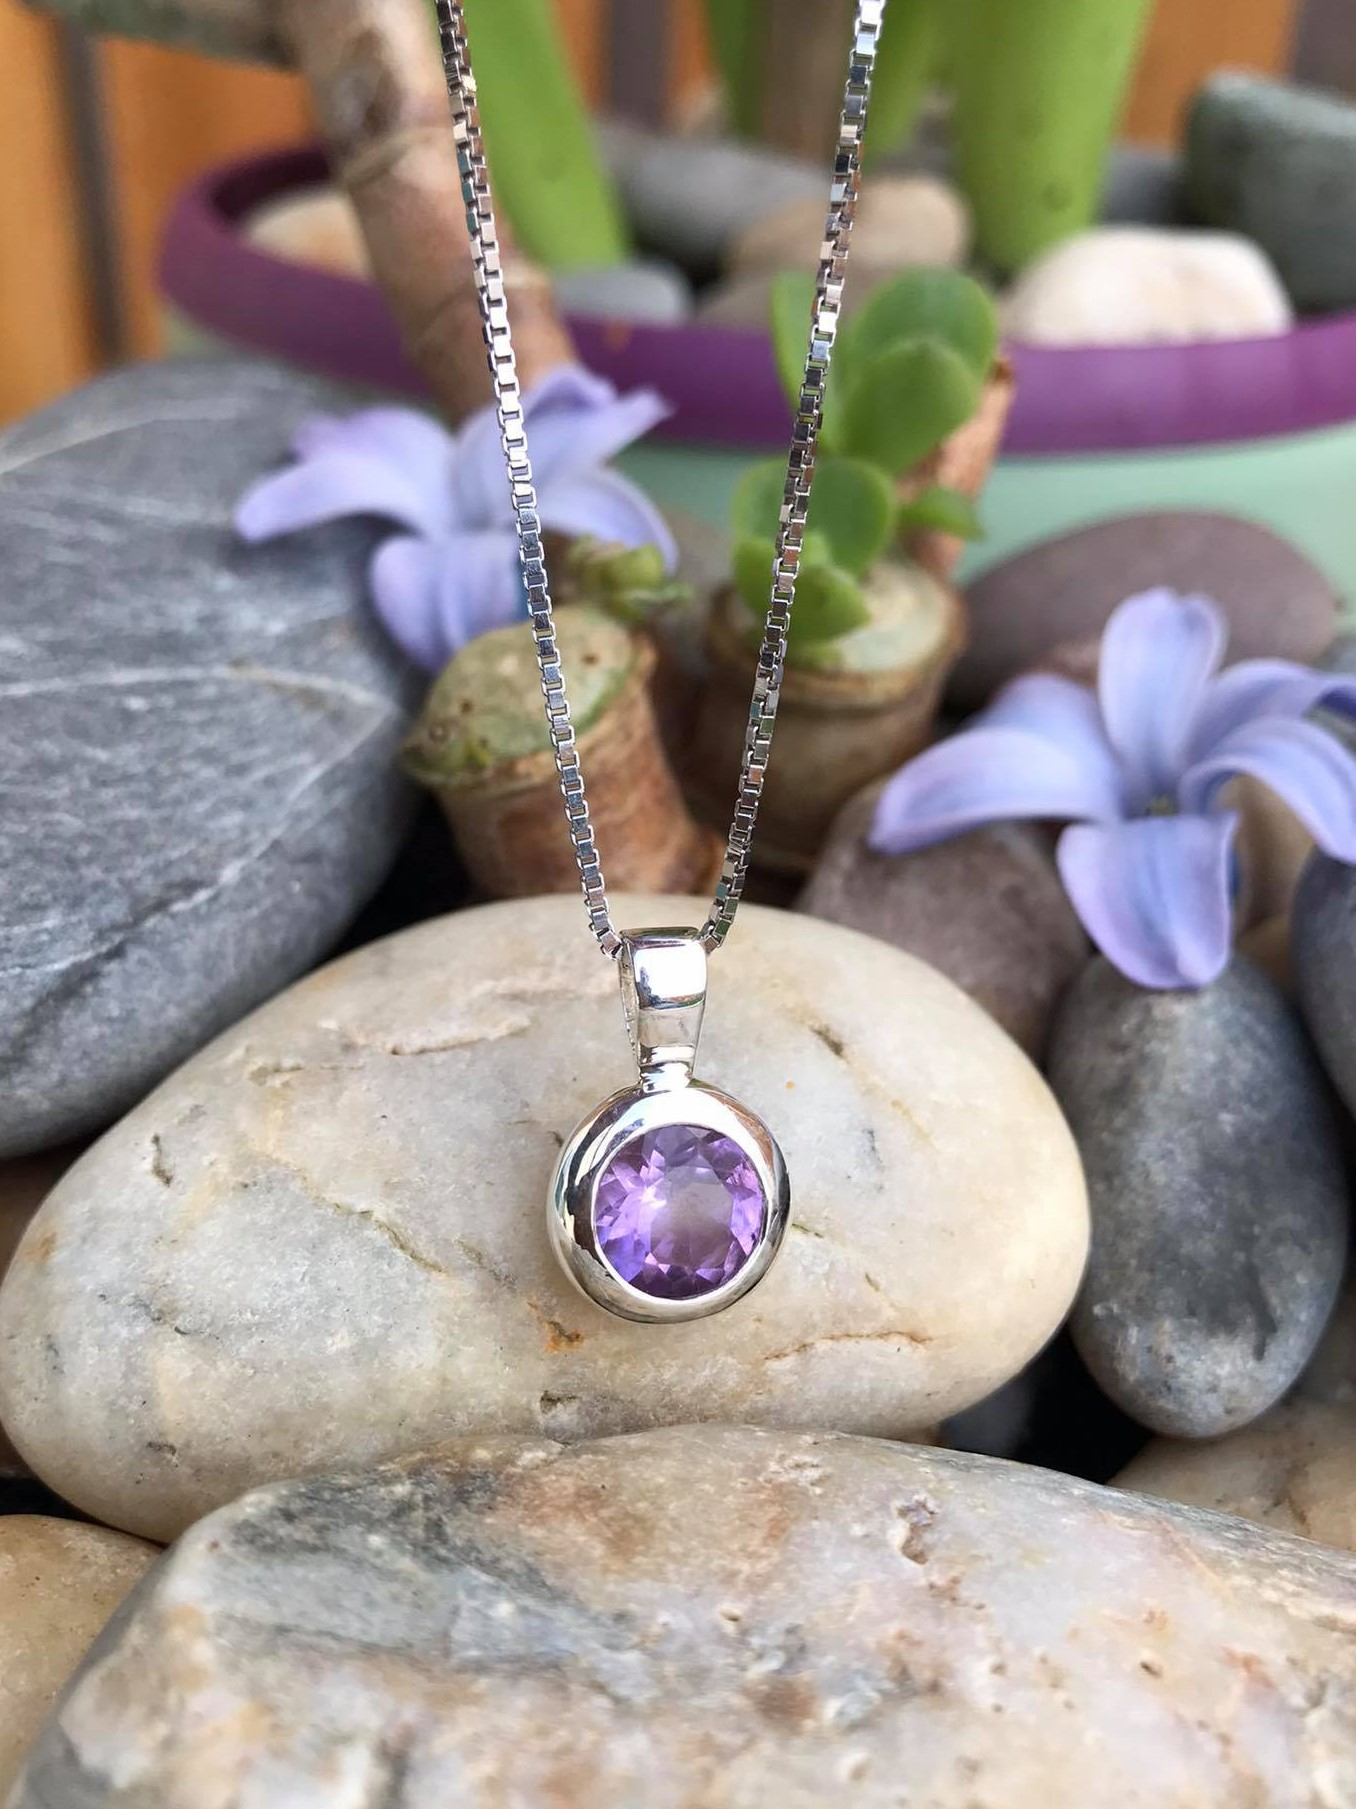 Handset lovely Round Faceted Natural Amethyst Sterling Silver Necklace 18 Inch Chain Image